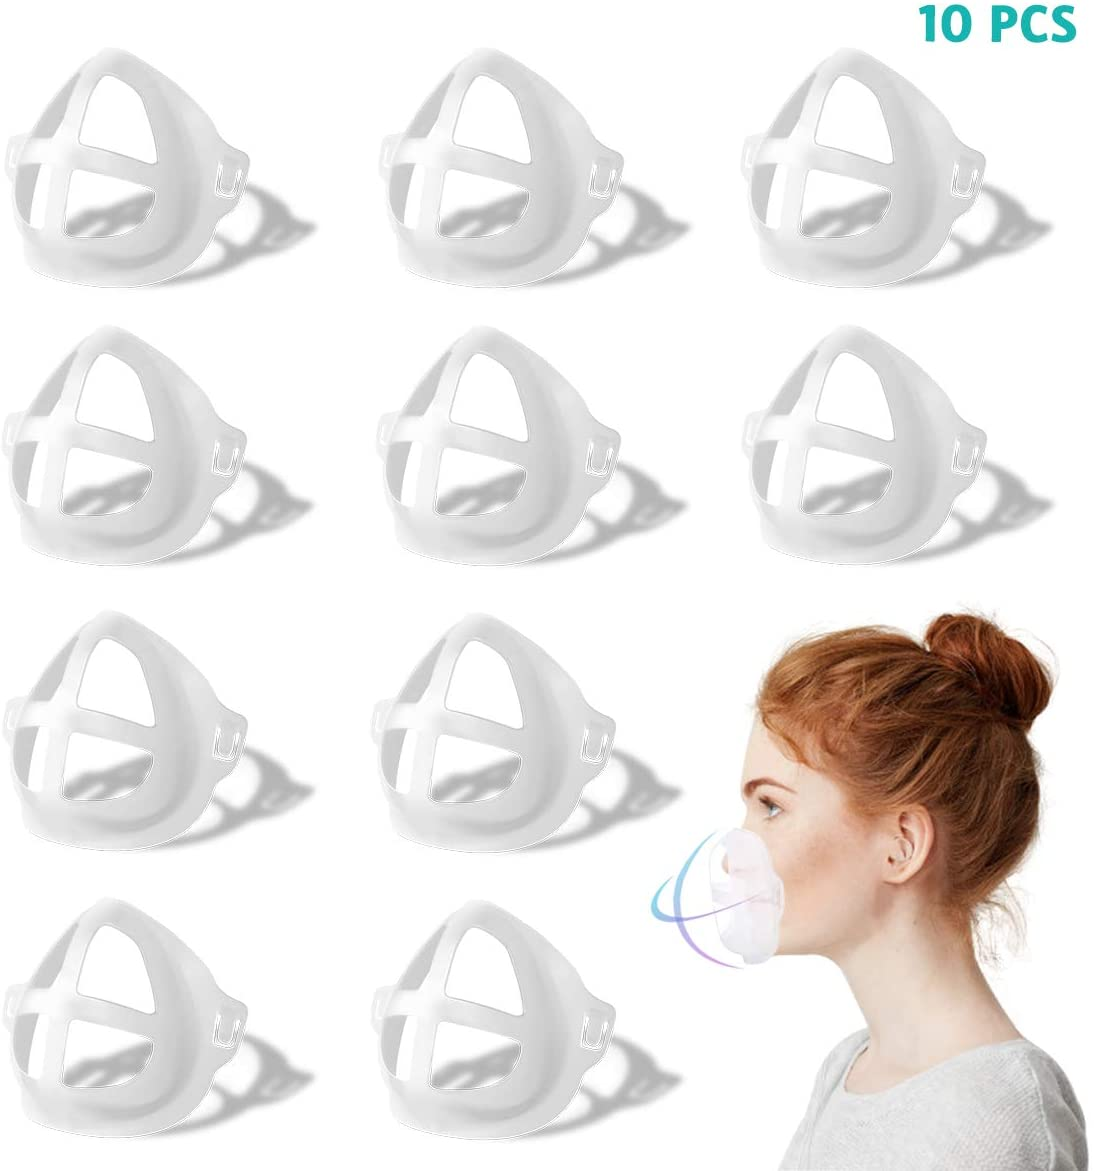 3D Face Inner Bracket, 10PCS Face Mask Inner Support Frame|Under Frame Lipstick Protector Keep Fabric off Mouth to Create More Breathing Space